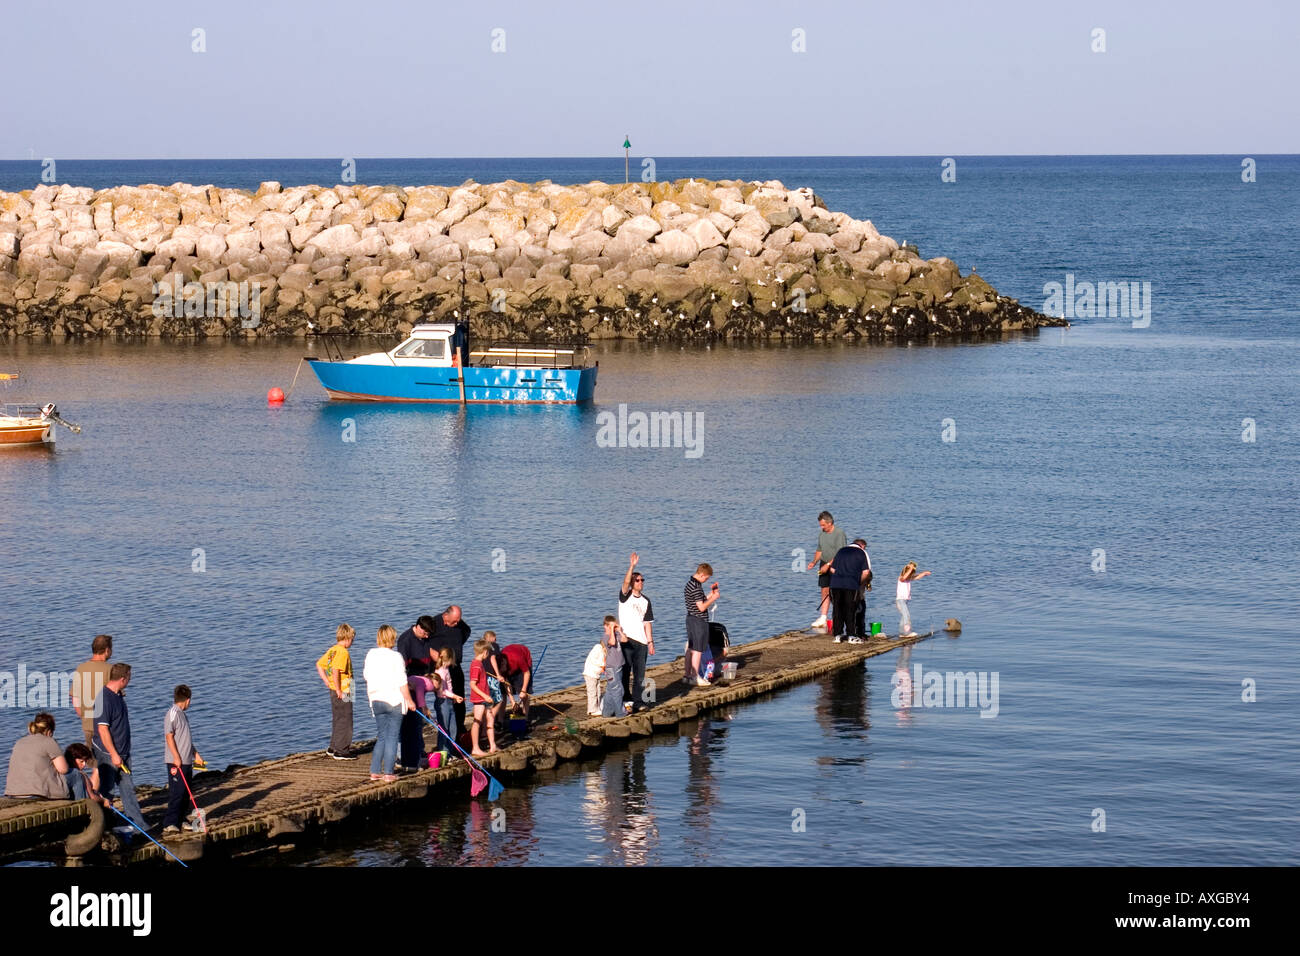 People fishing and crabbing at Rhos on Sea Colwyn Bay North Wales - Stock Image